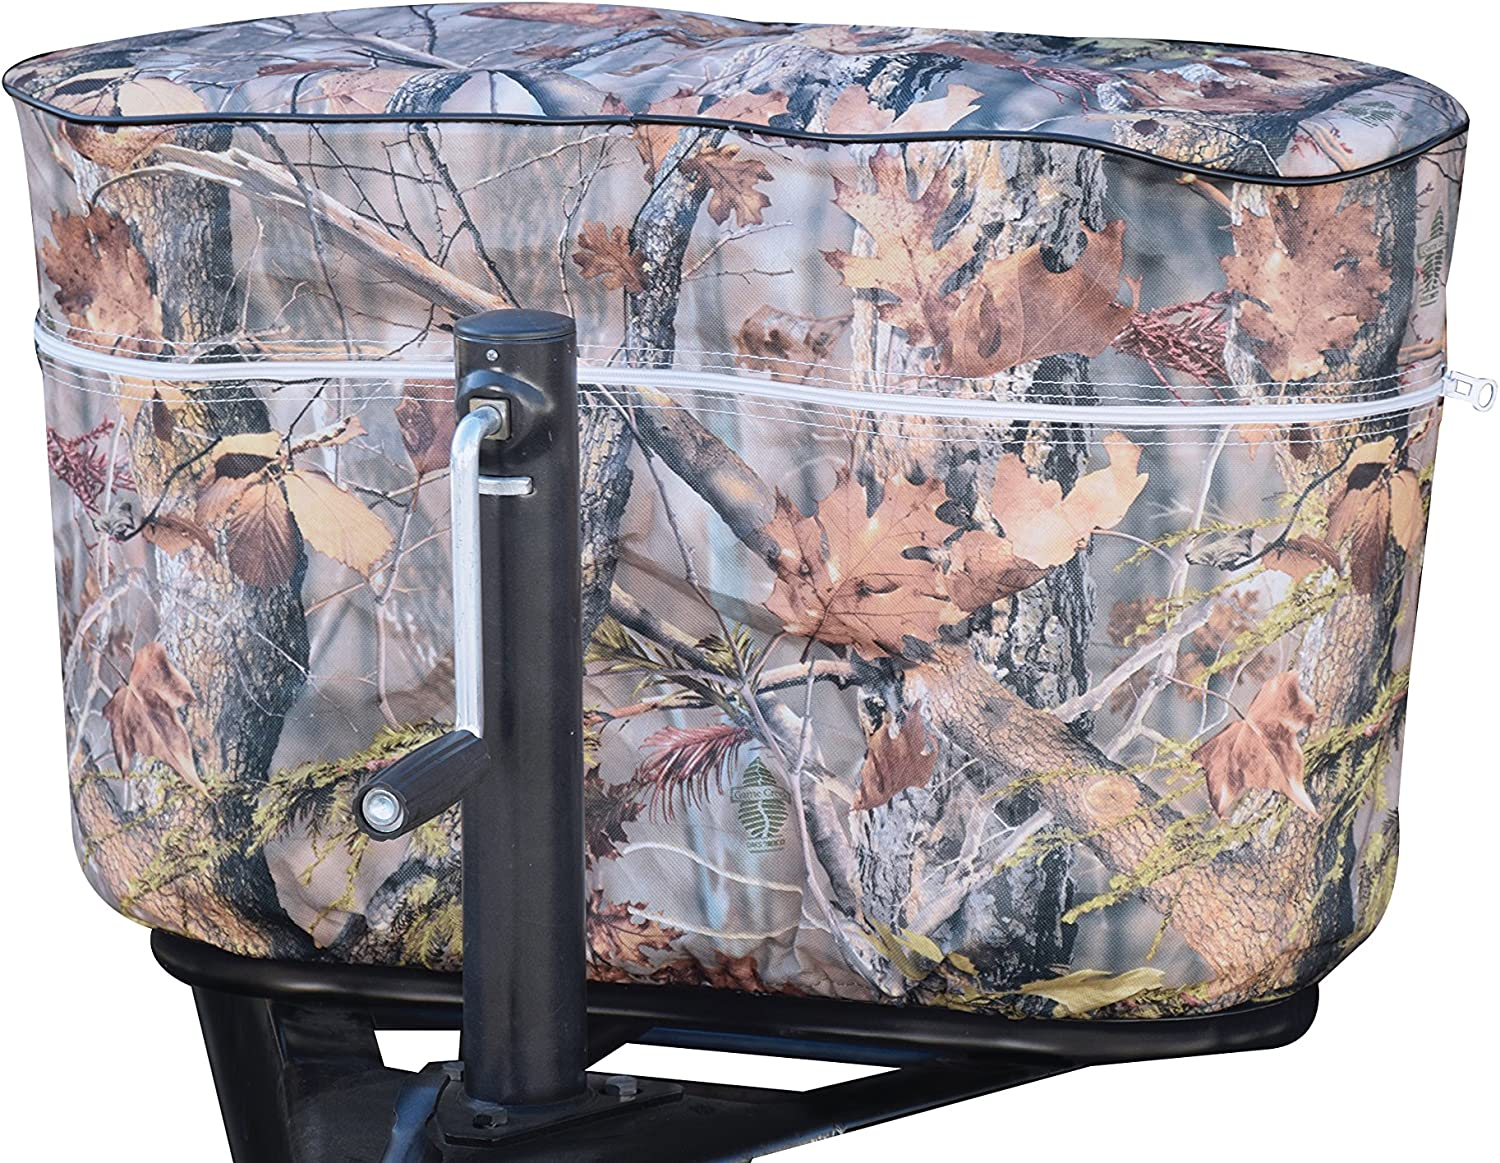 Reservation ADCO 2614 Camouflage Double 40 Game Oaks online shopping Propane Tank Creek Cove